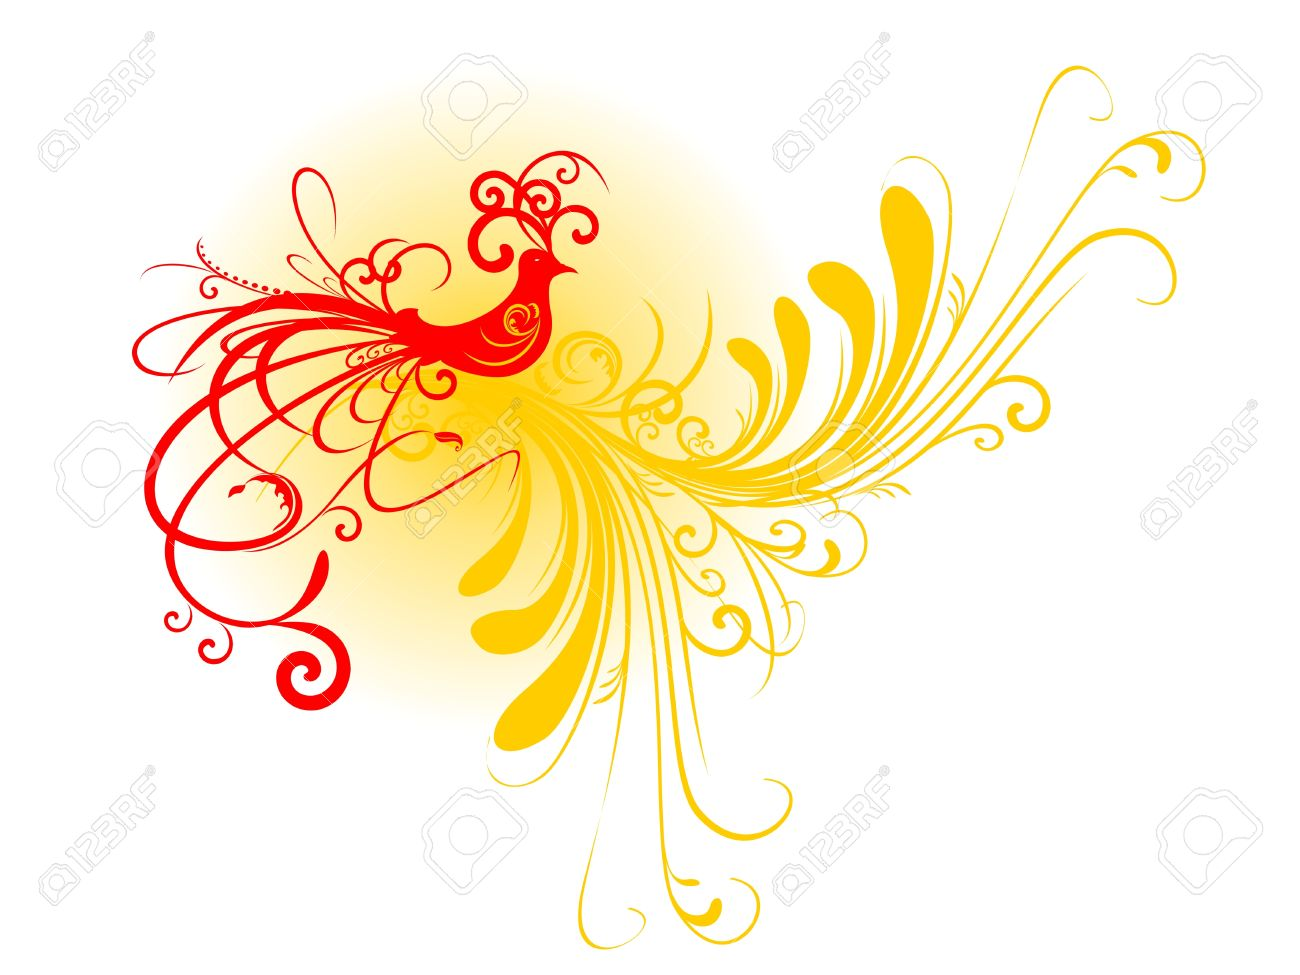 Abstract bird silhouette with floral motif - 10689511